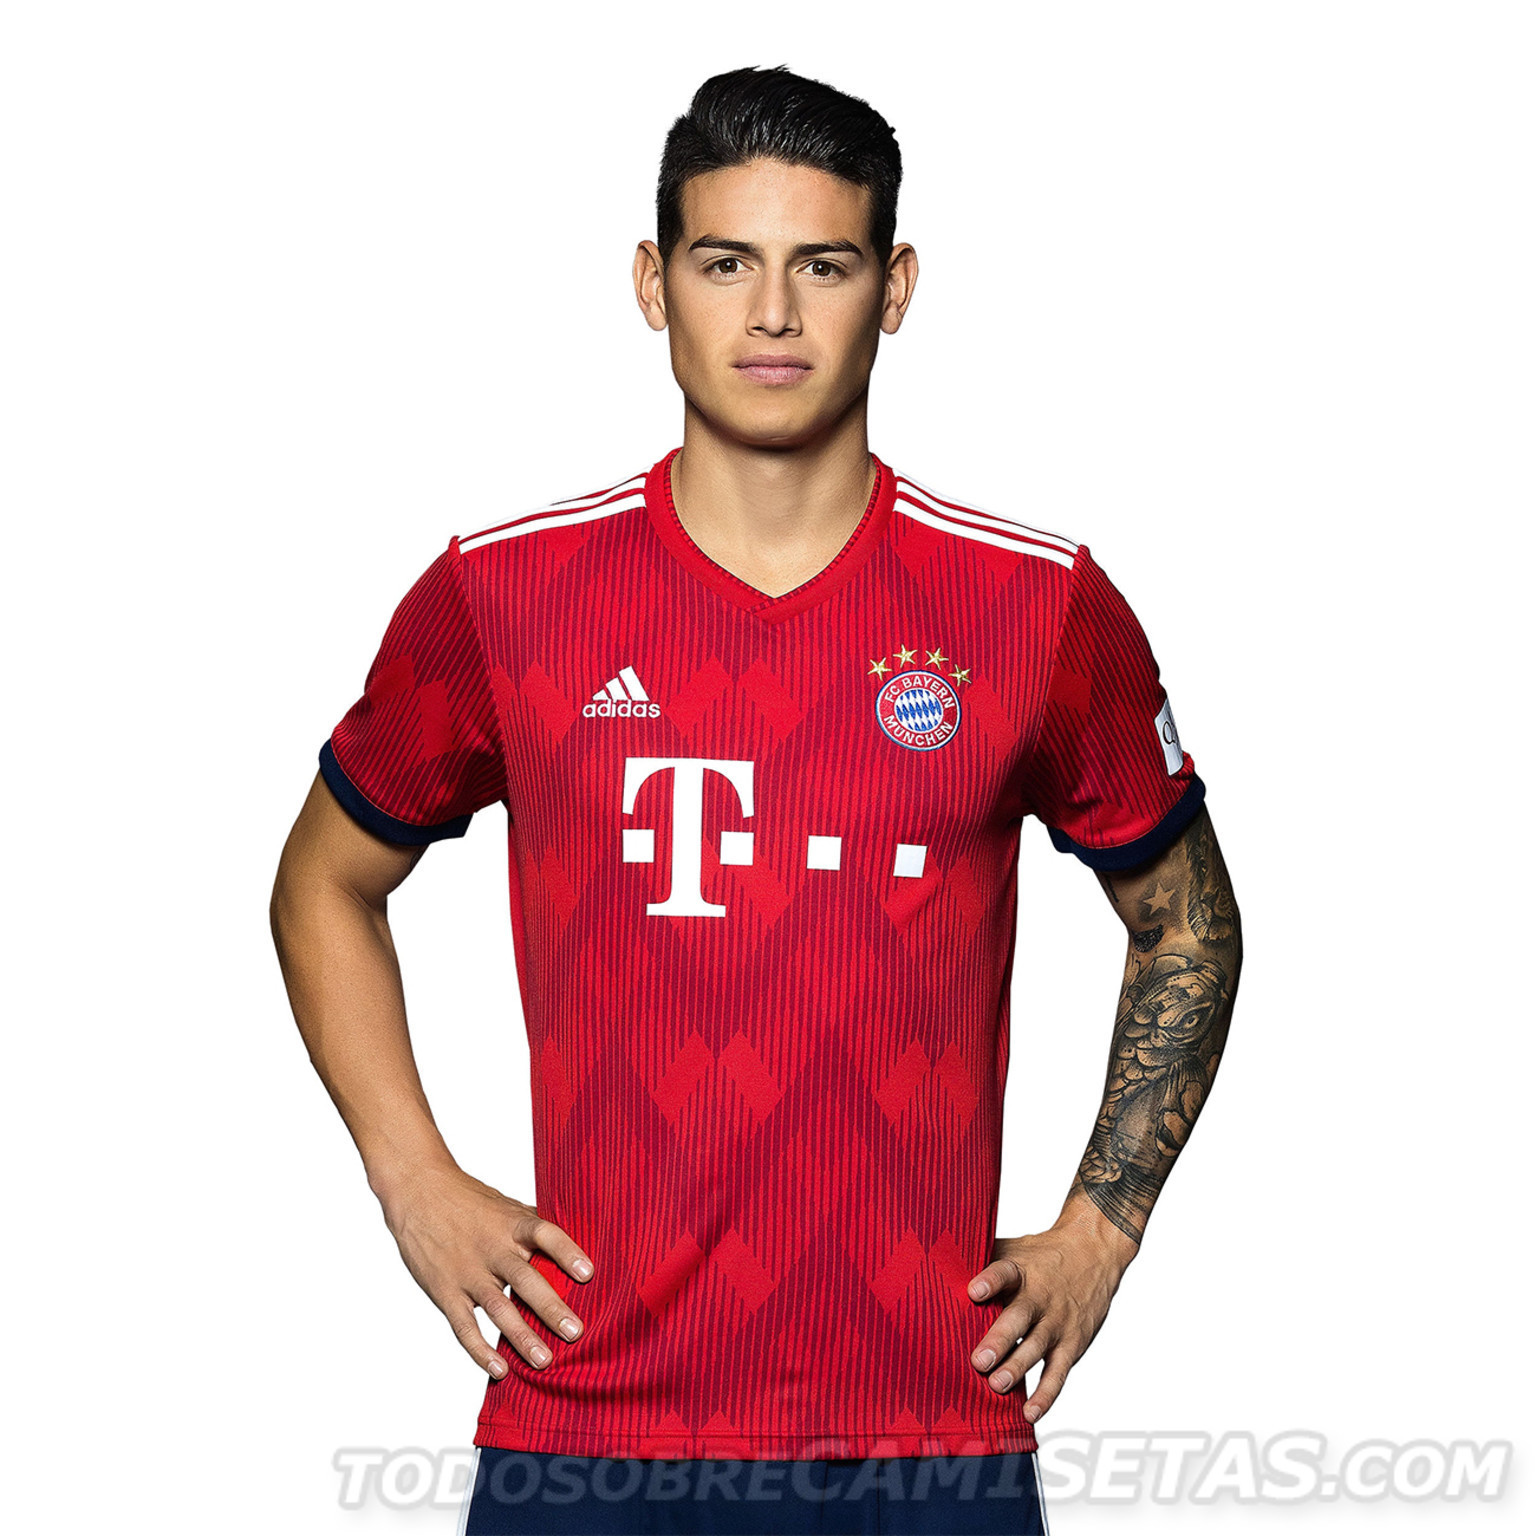 Bayern-Munich-2018-19-adidas-new-home-kit-5.jpg